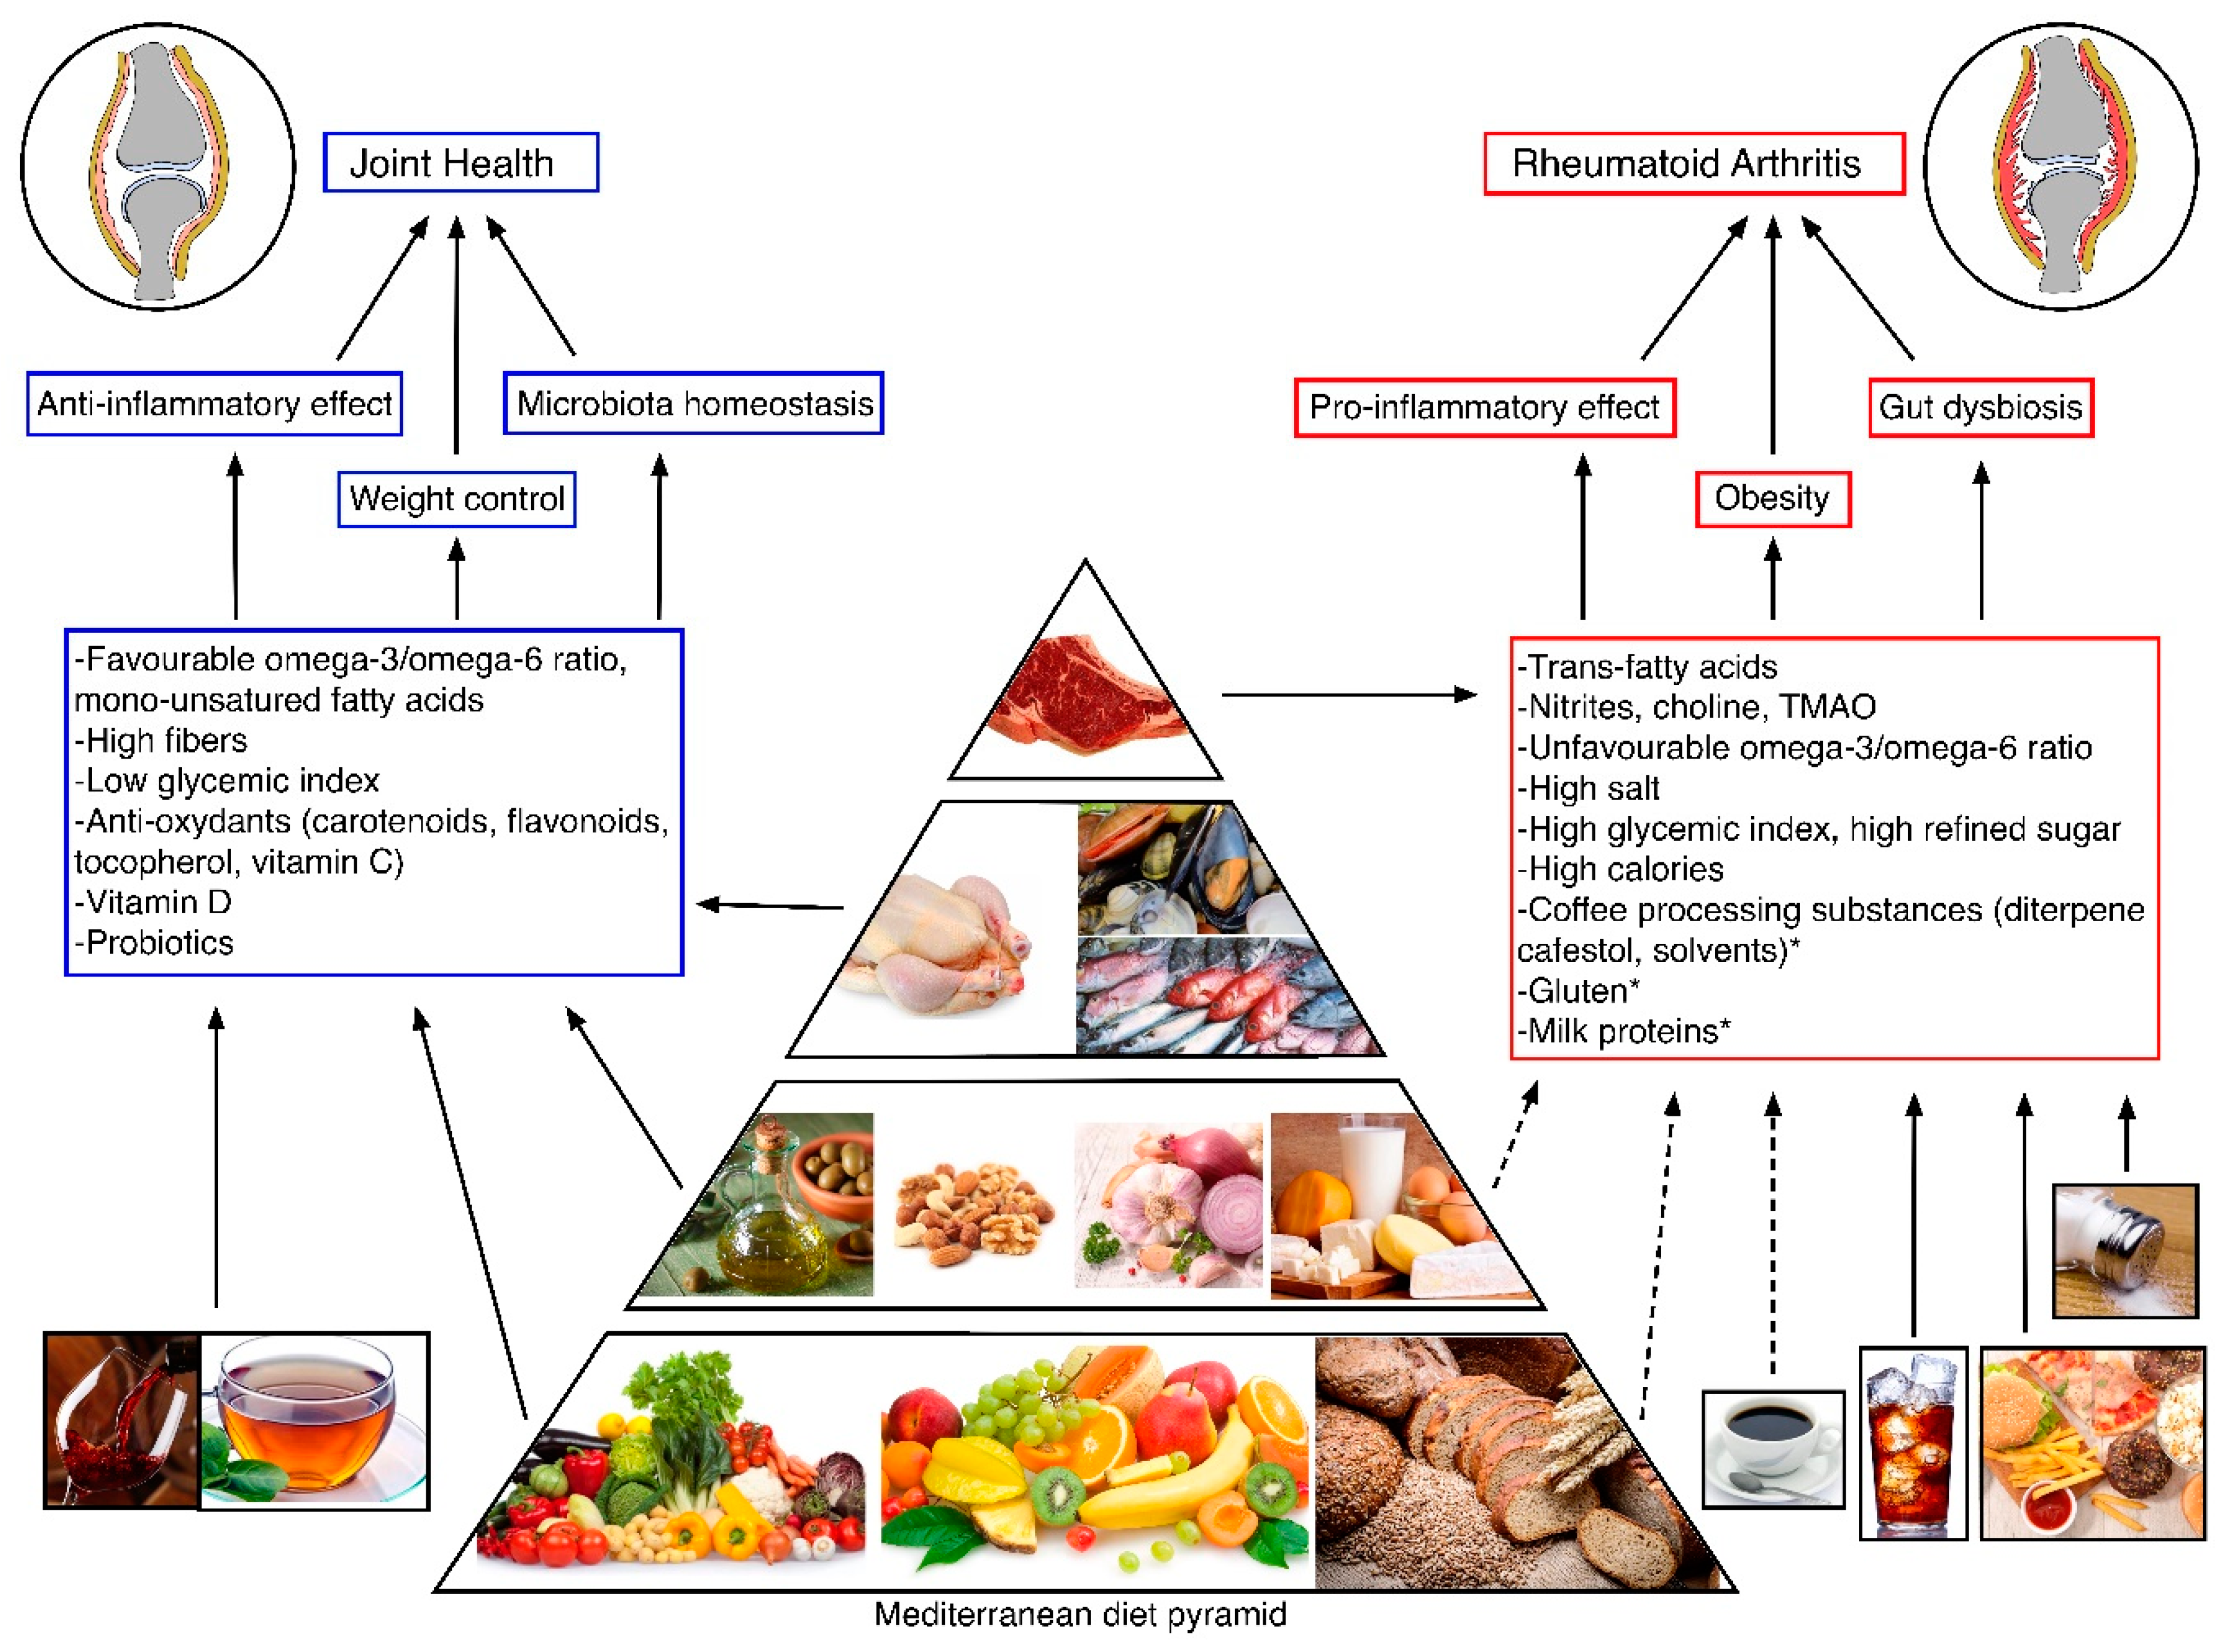 Nutrients Free Full Text Dietary Habits And Nutrition In Rheumatoid Arthritis Can Diet Influence Disease Development And Clinical Manifestations Html